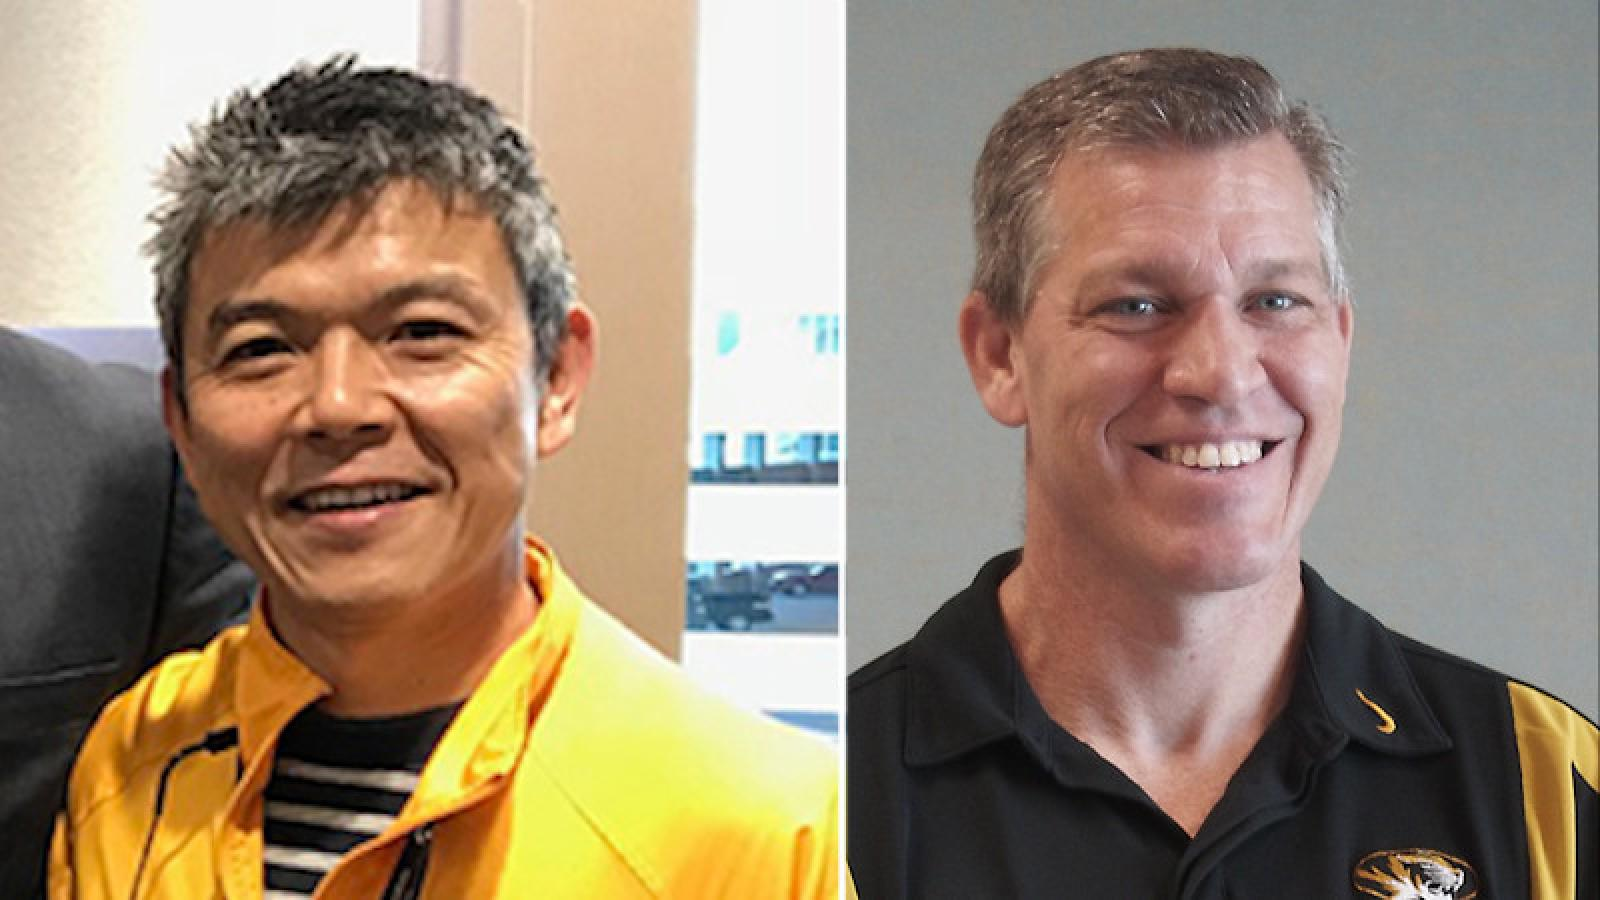 Drs. Kuroki and Stoker have been promoted to full Professor